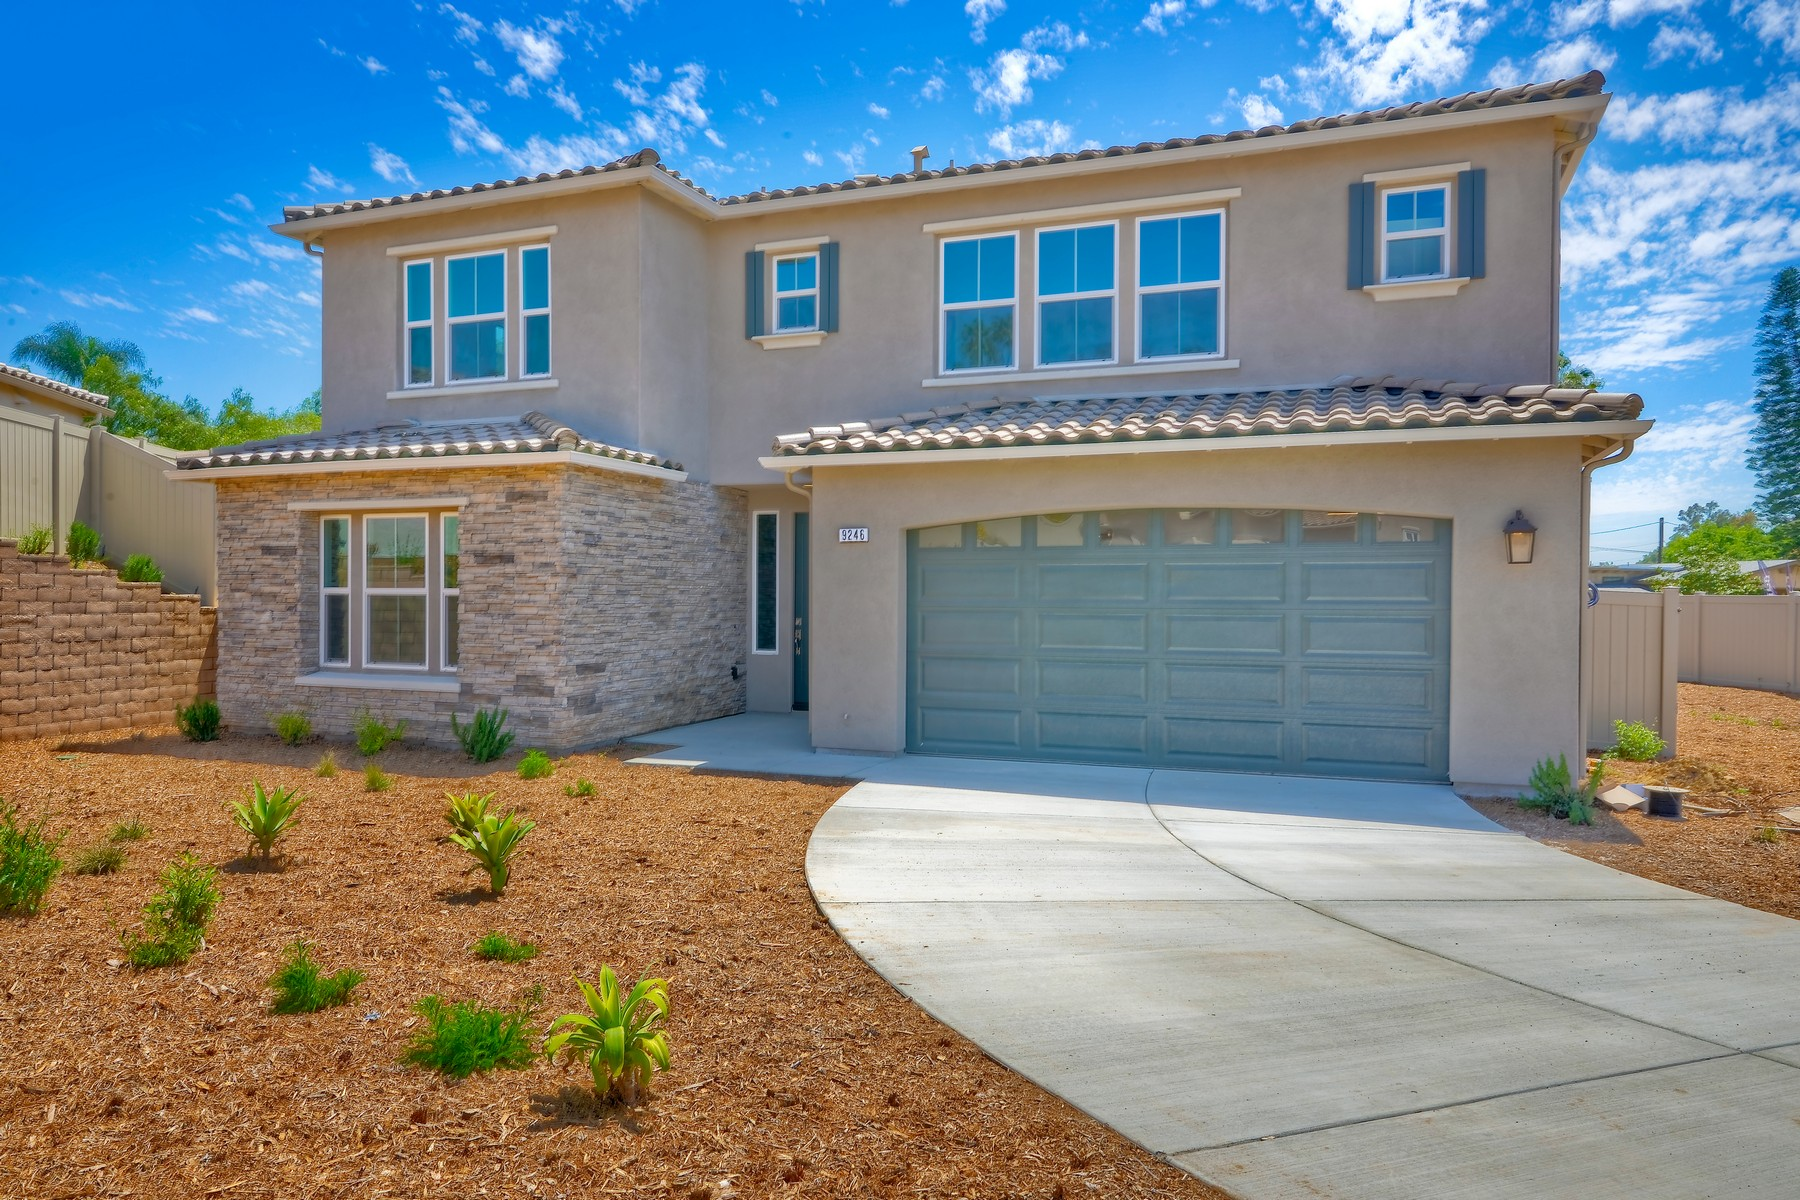 Vivienda unifamiliar En venta en 9246 Helix Mesa Way, Spring Valley, California ,91977  , EE.UU.